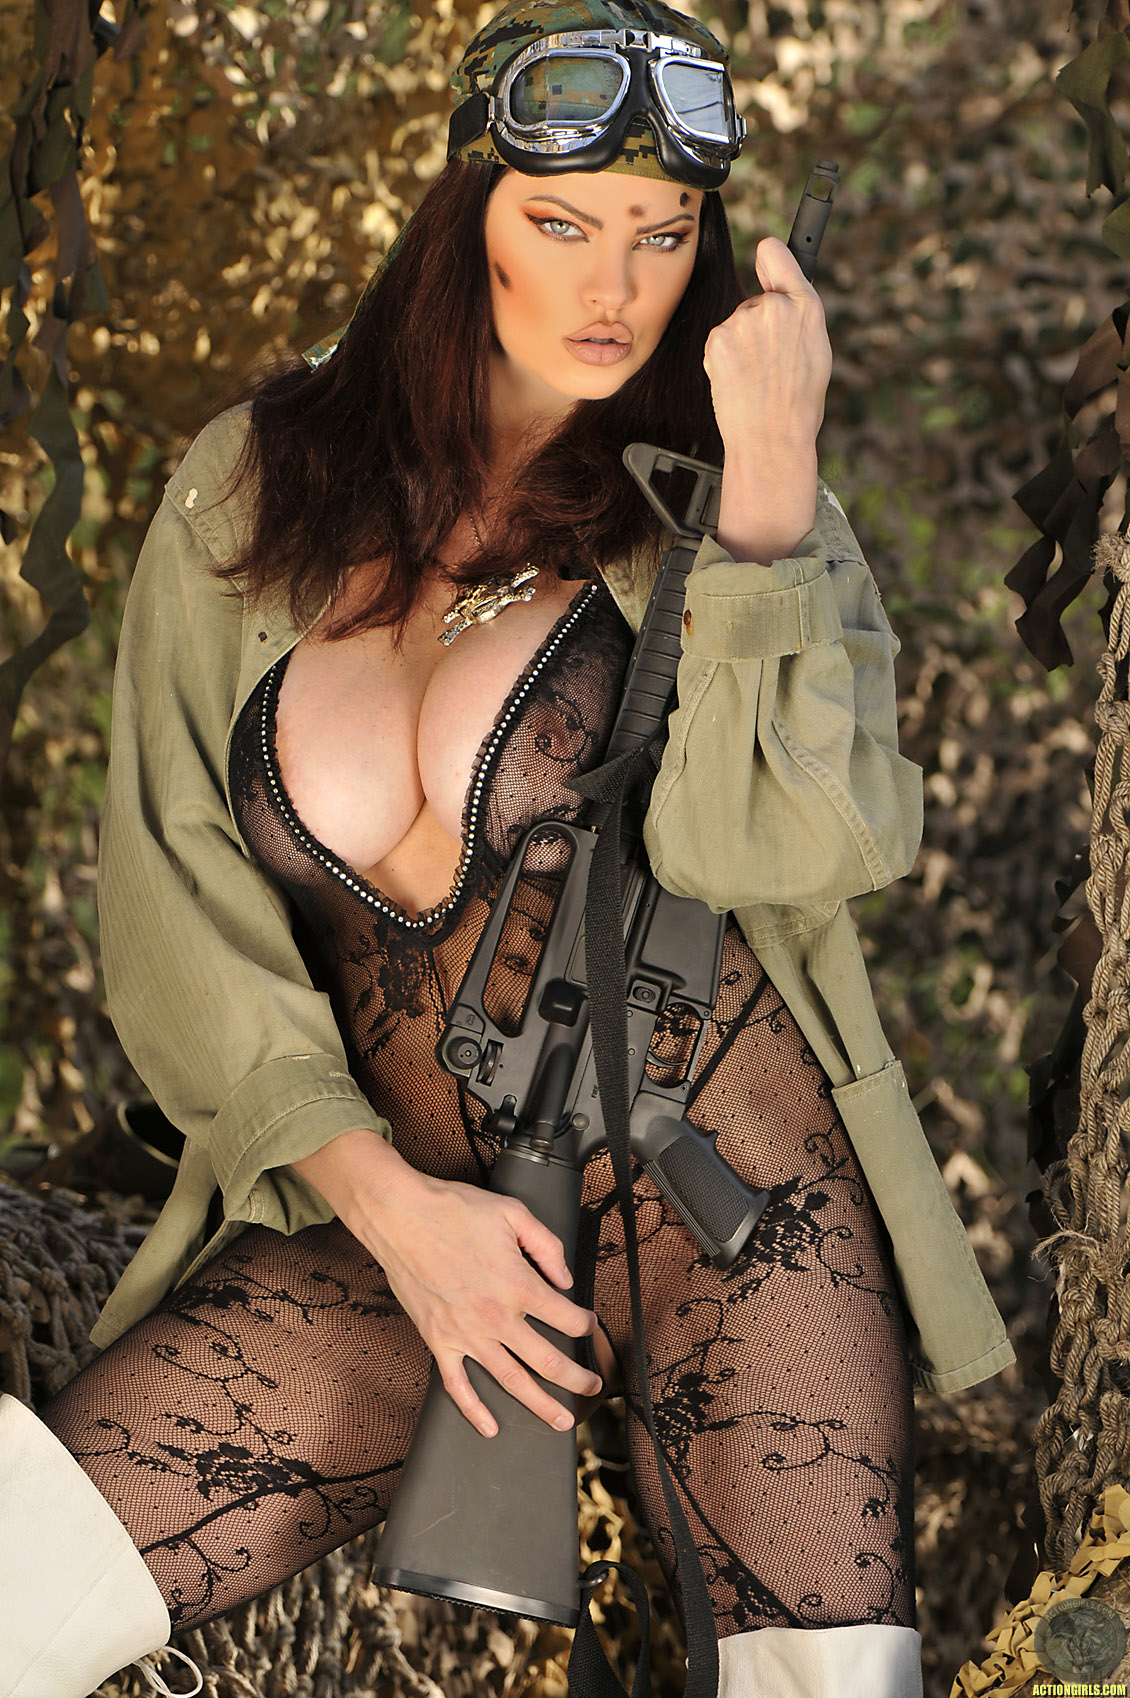 Strapon Couple Busty Babes With Guns